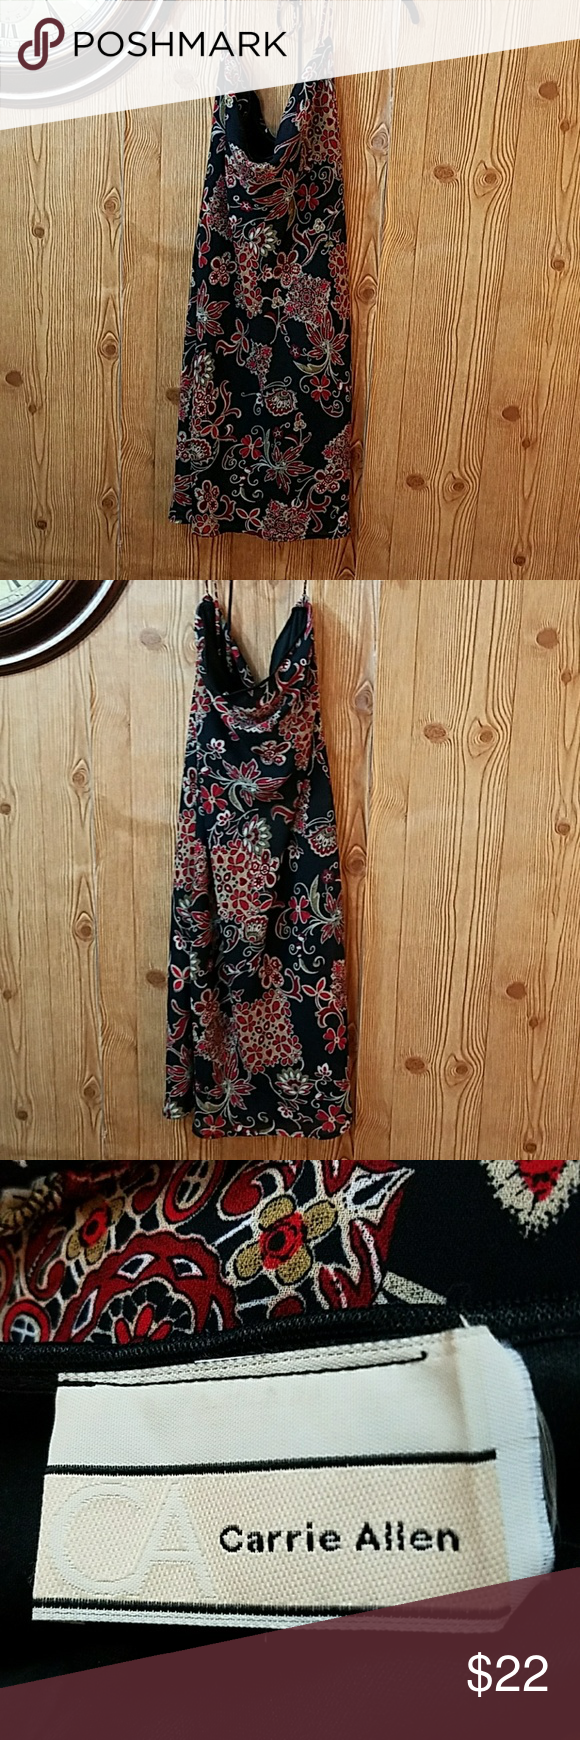 Carrie allen skirt carrie floral and customer support